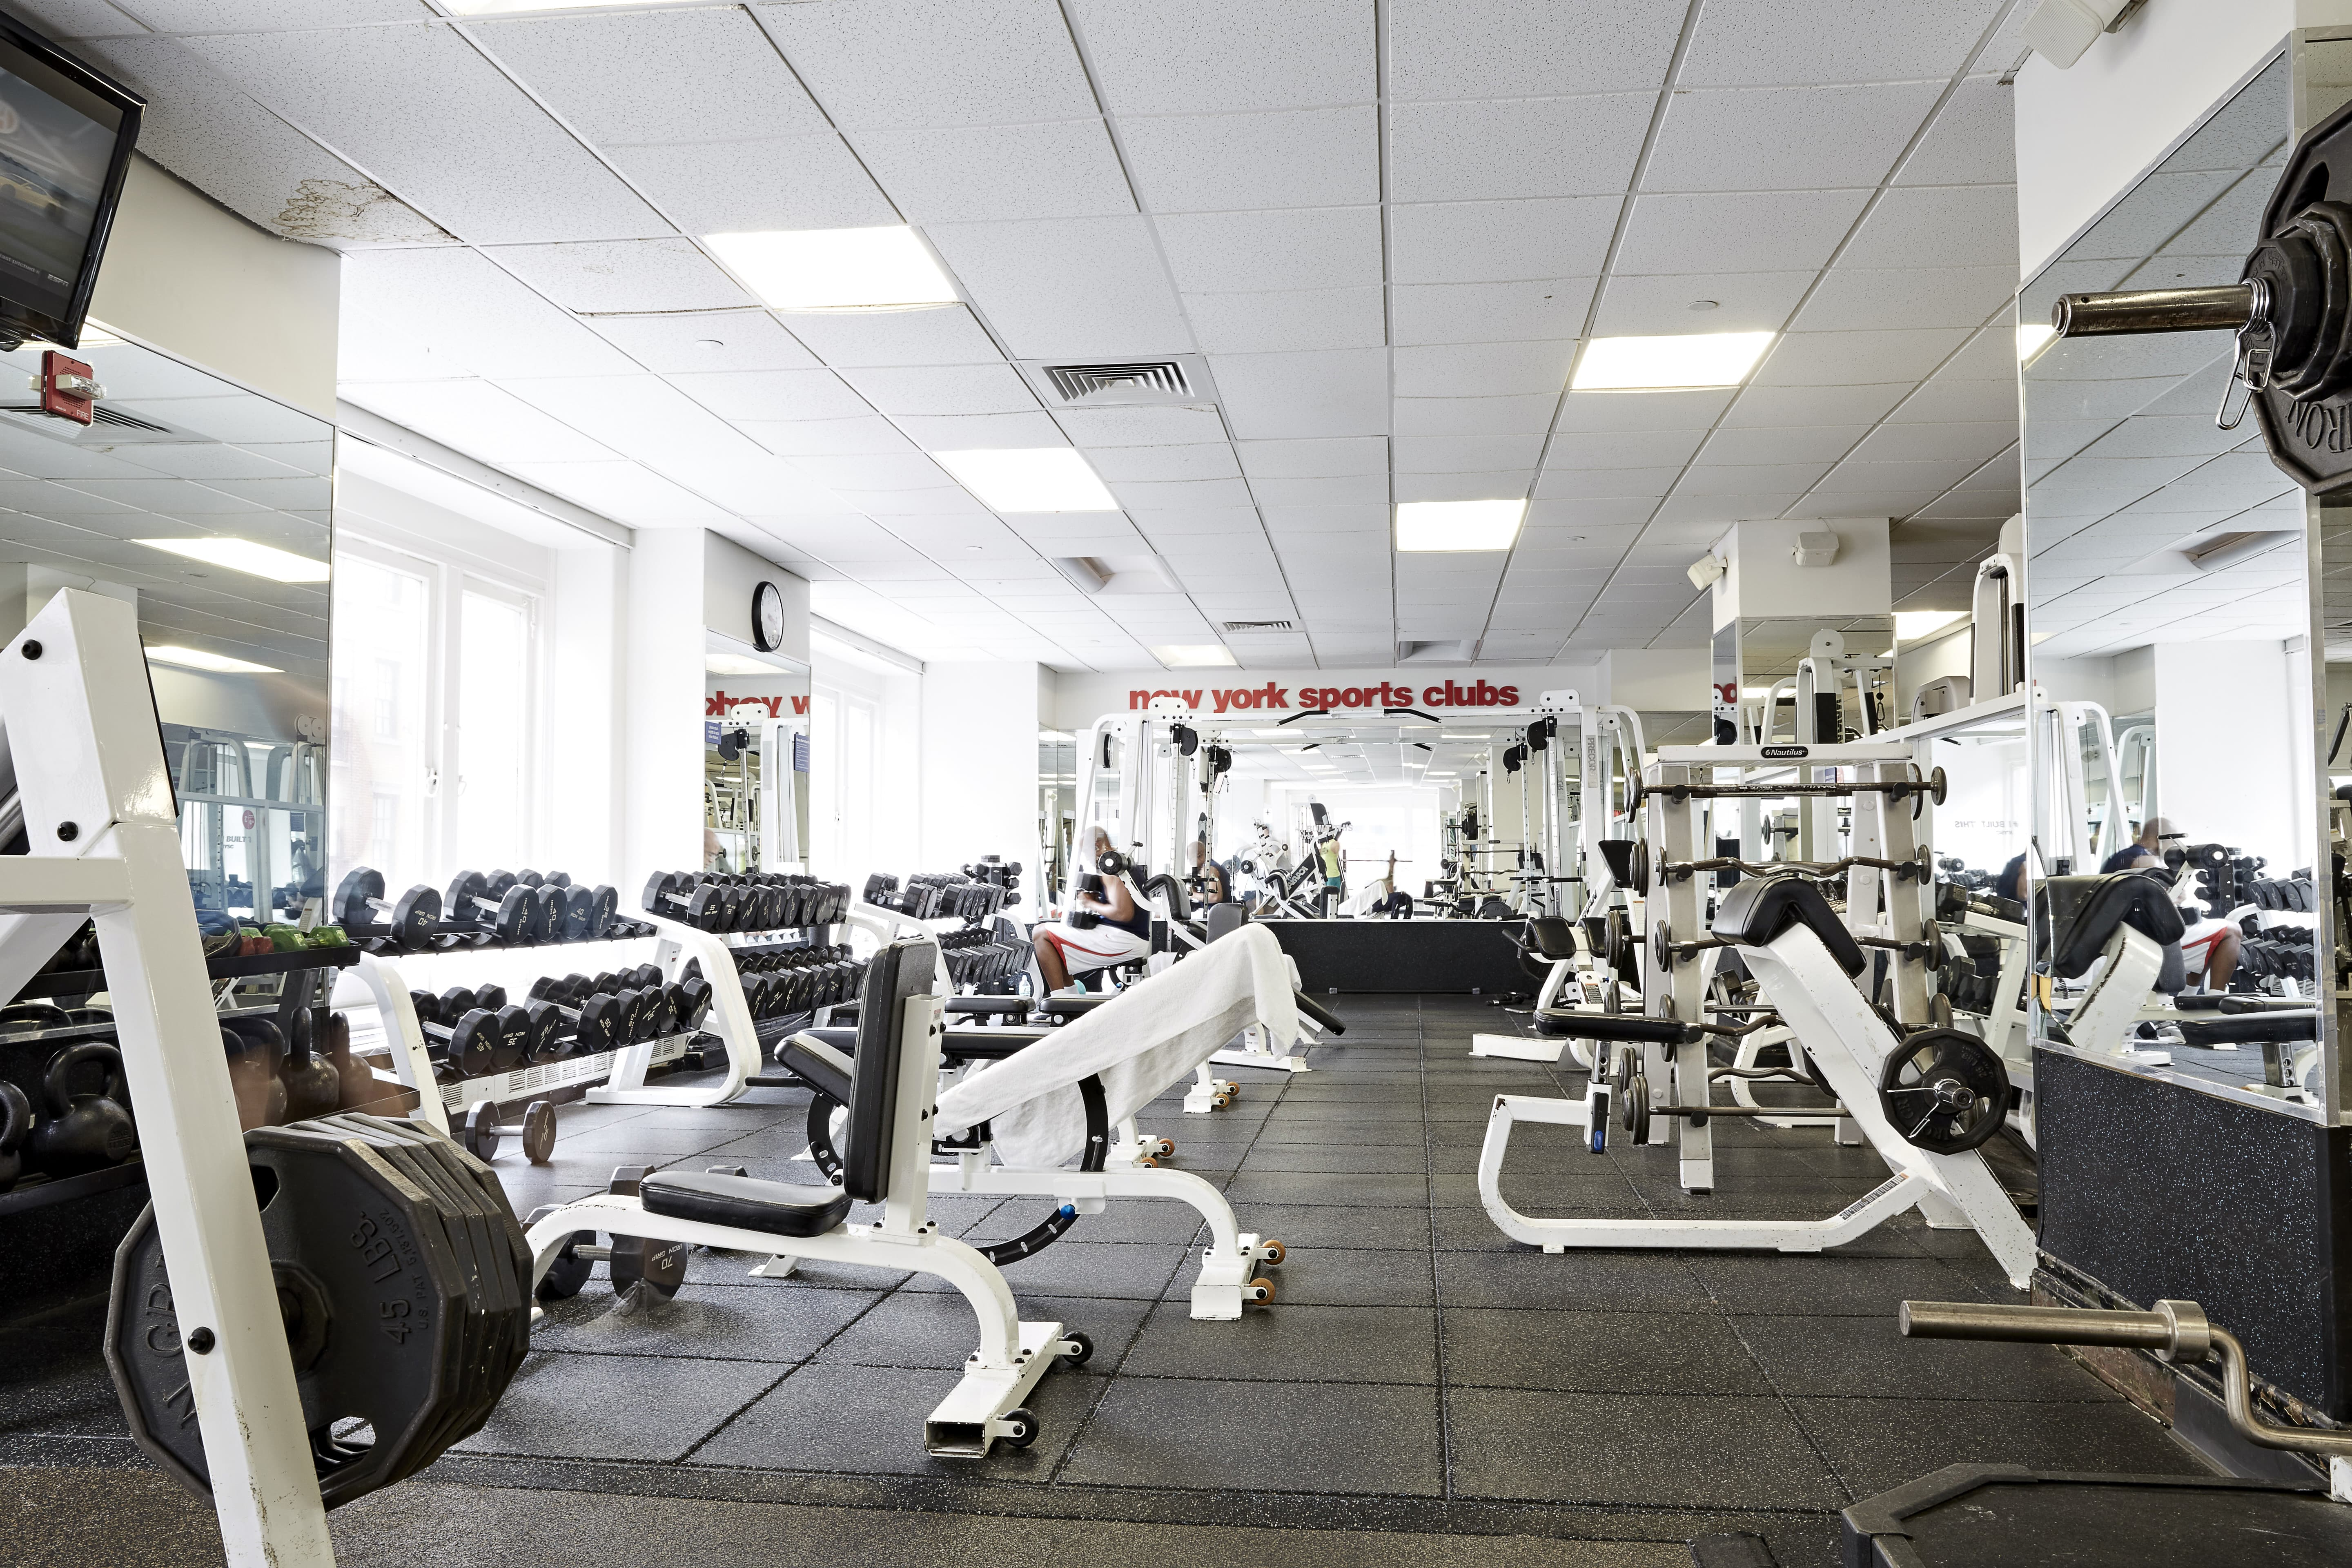 New York Sports Clubs image 9